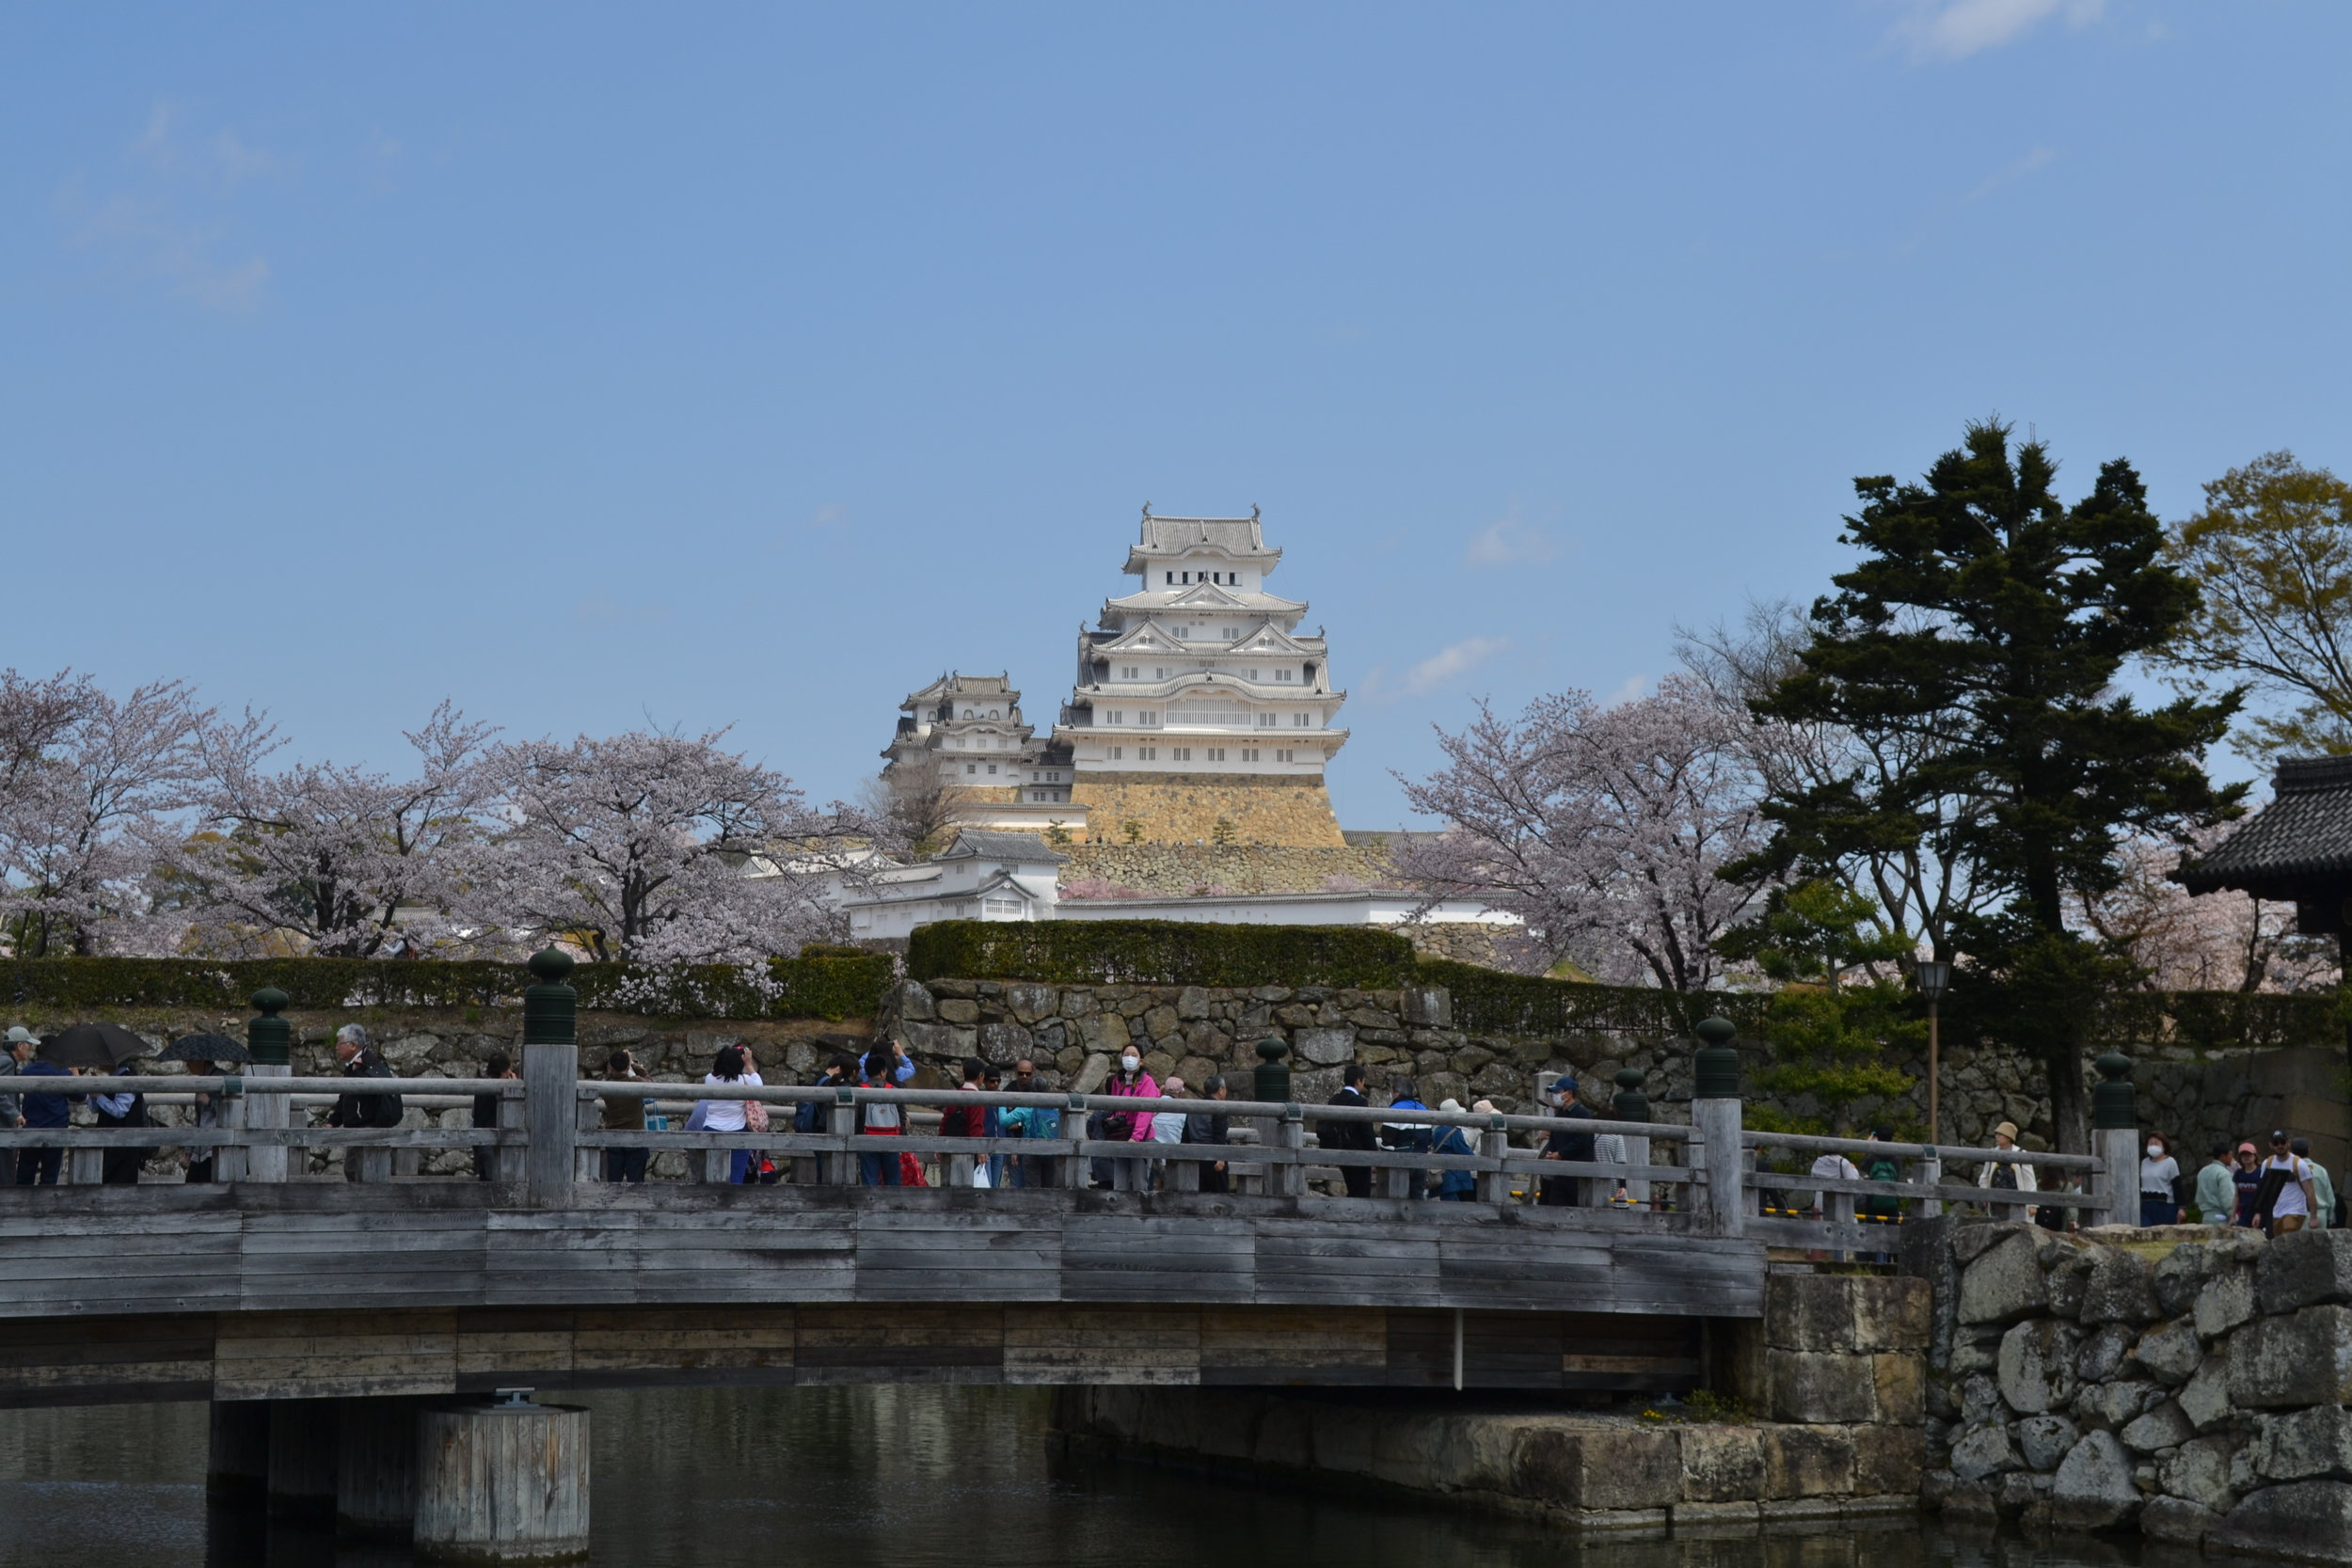 A look at the castle from afar, and you can see the entrance bridge to it has plenty of tourists.